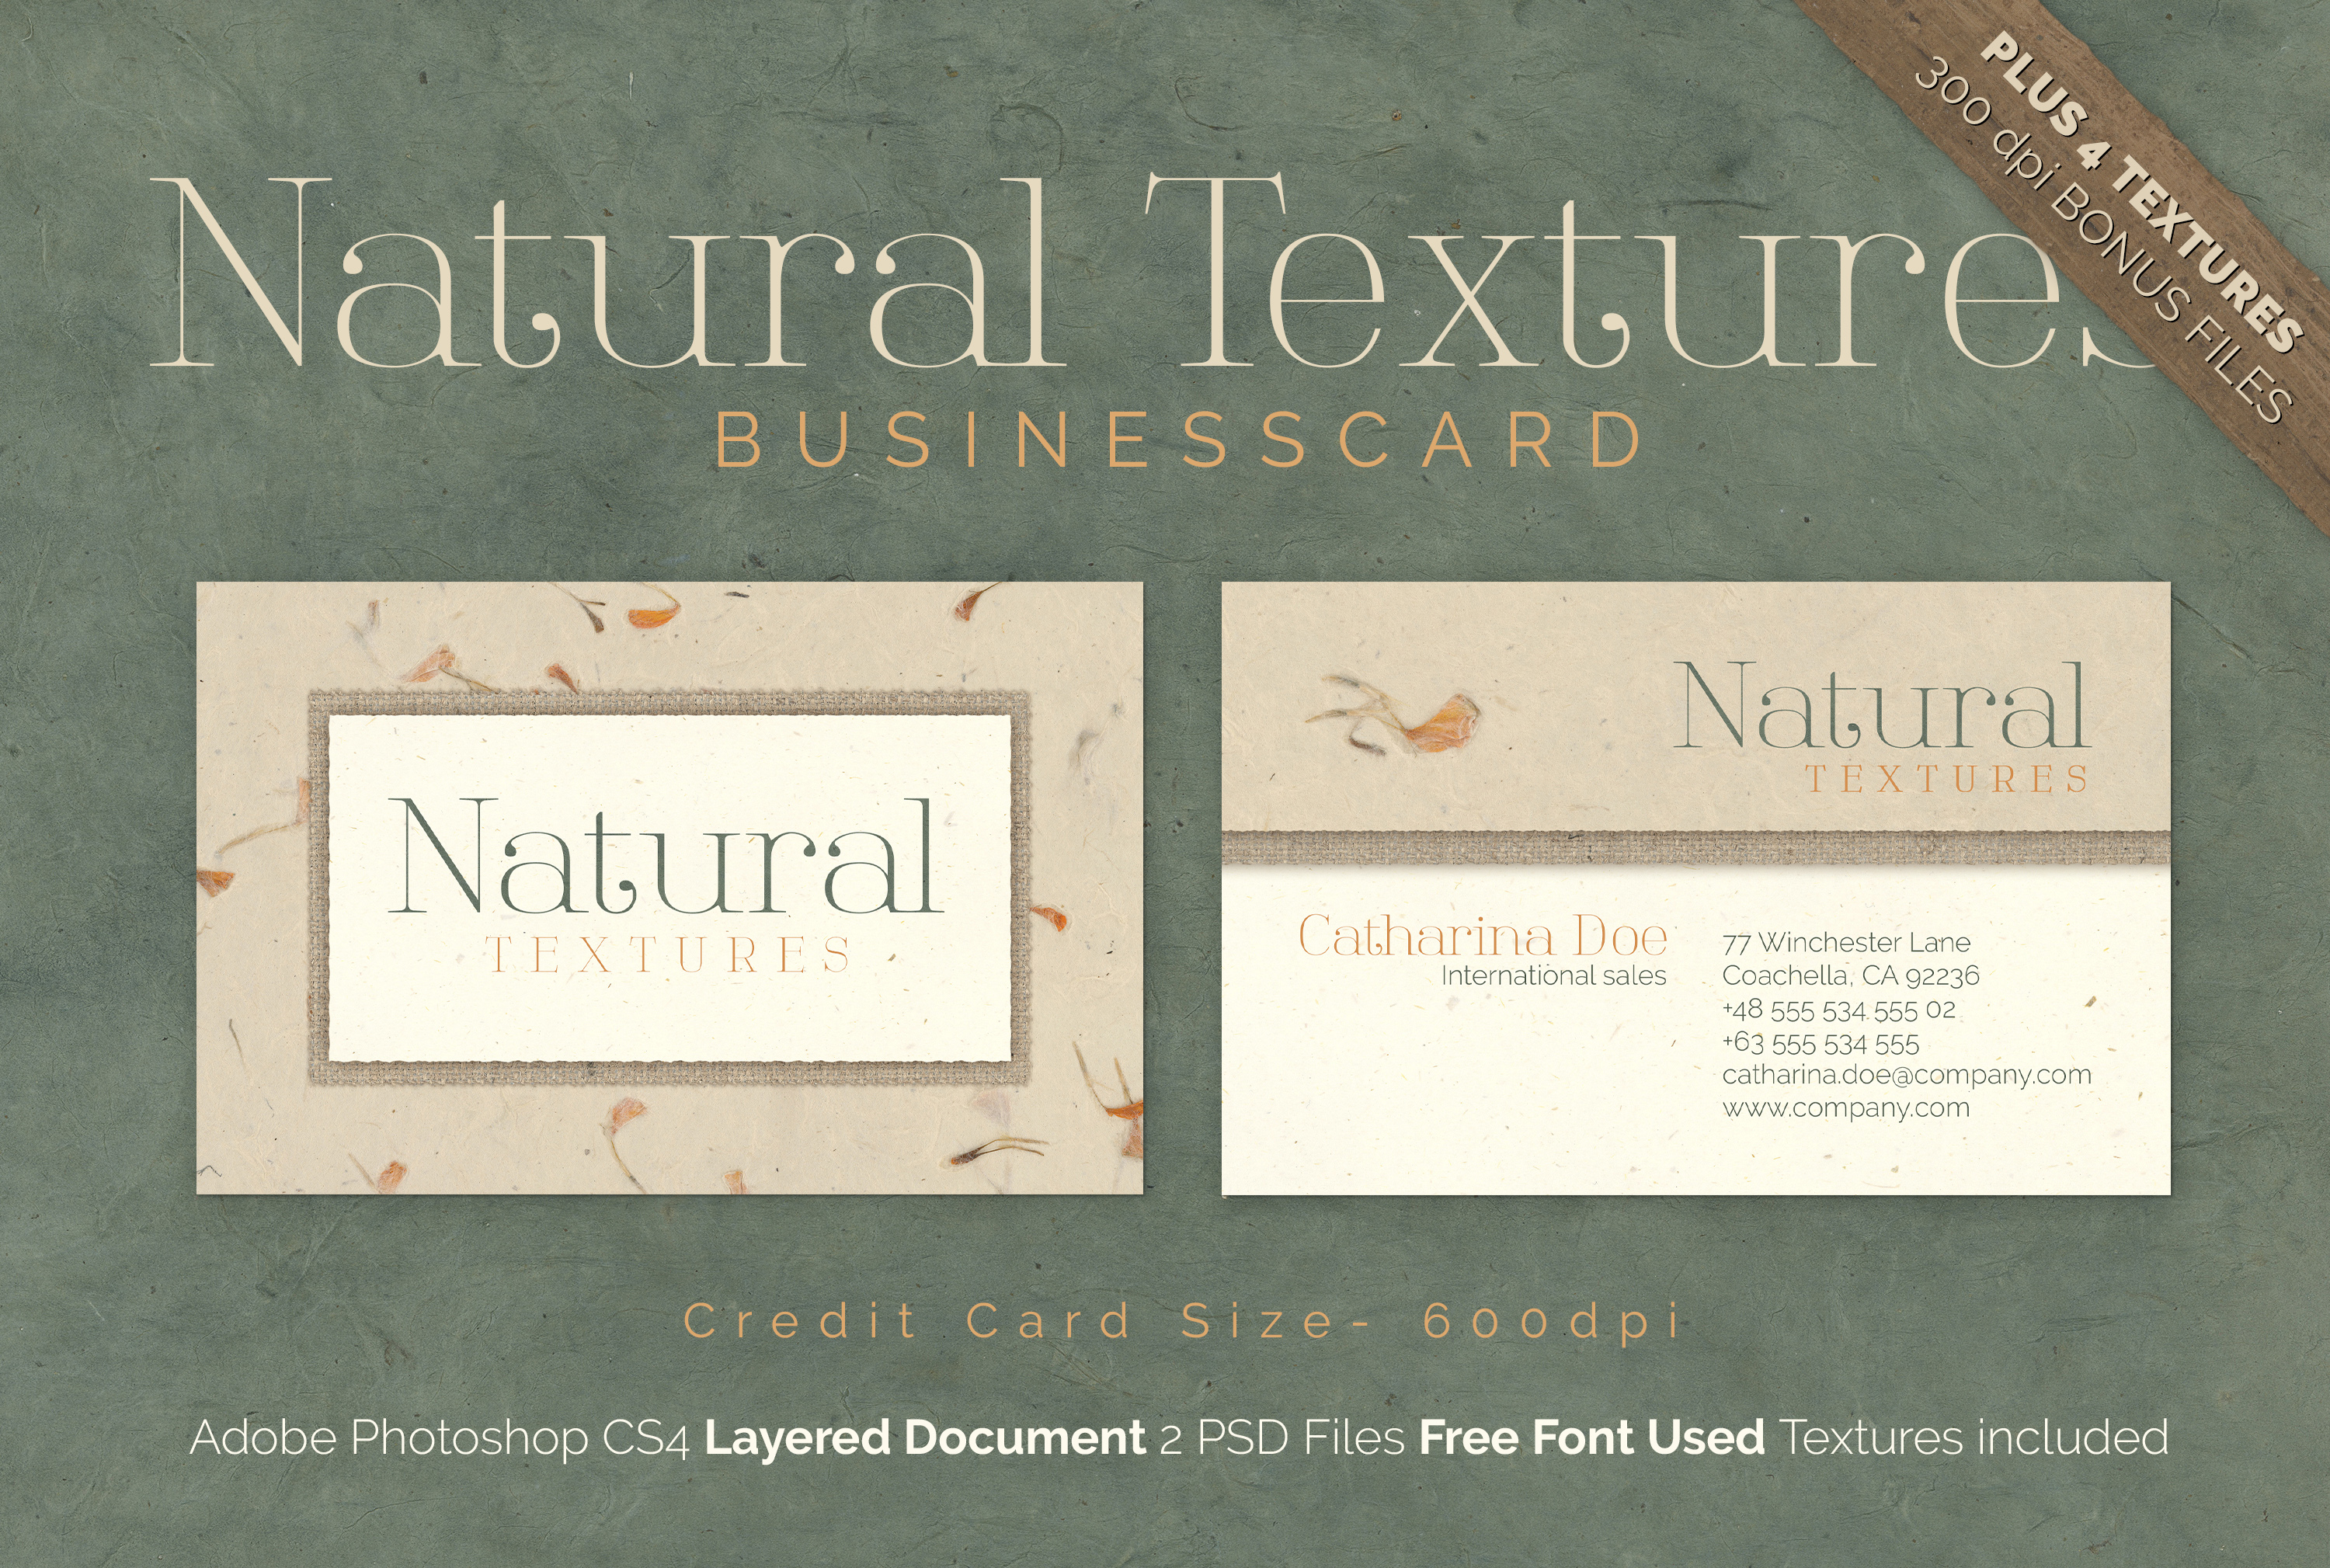 Natural Texture - Business Card example image 1